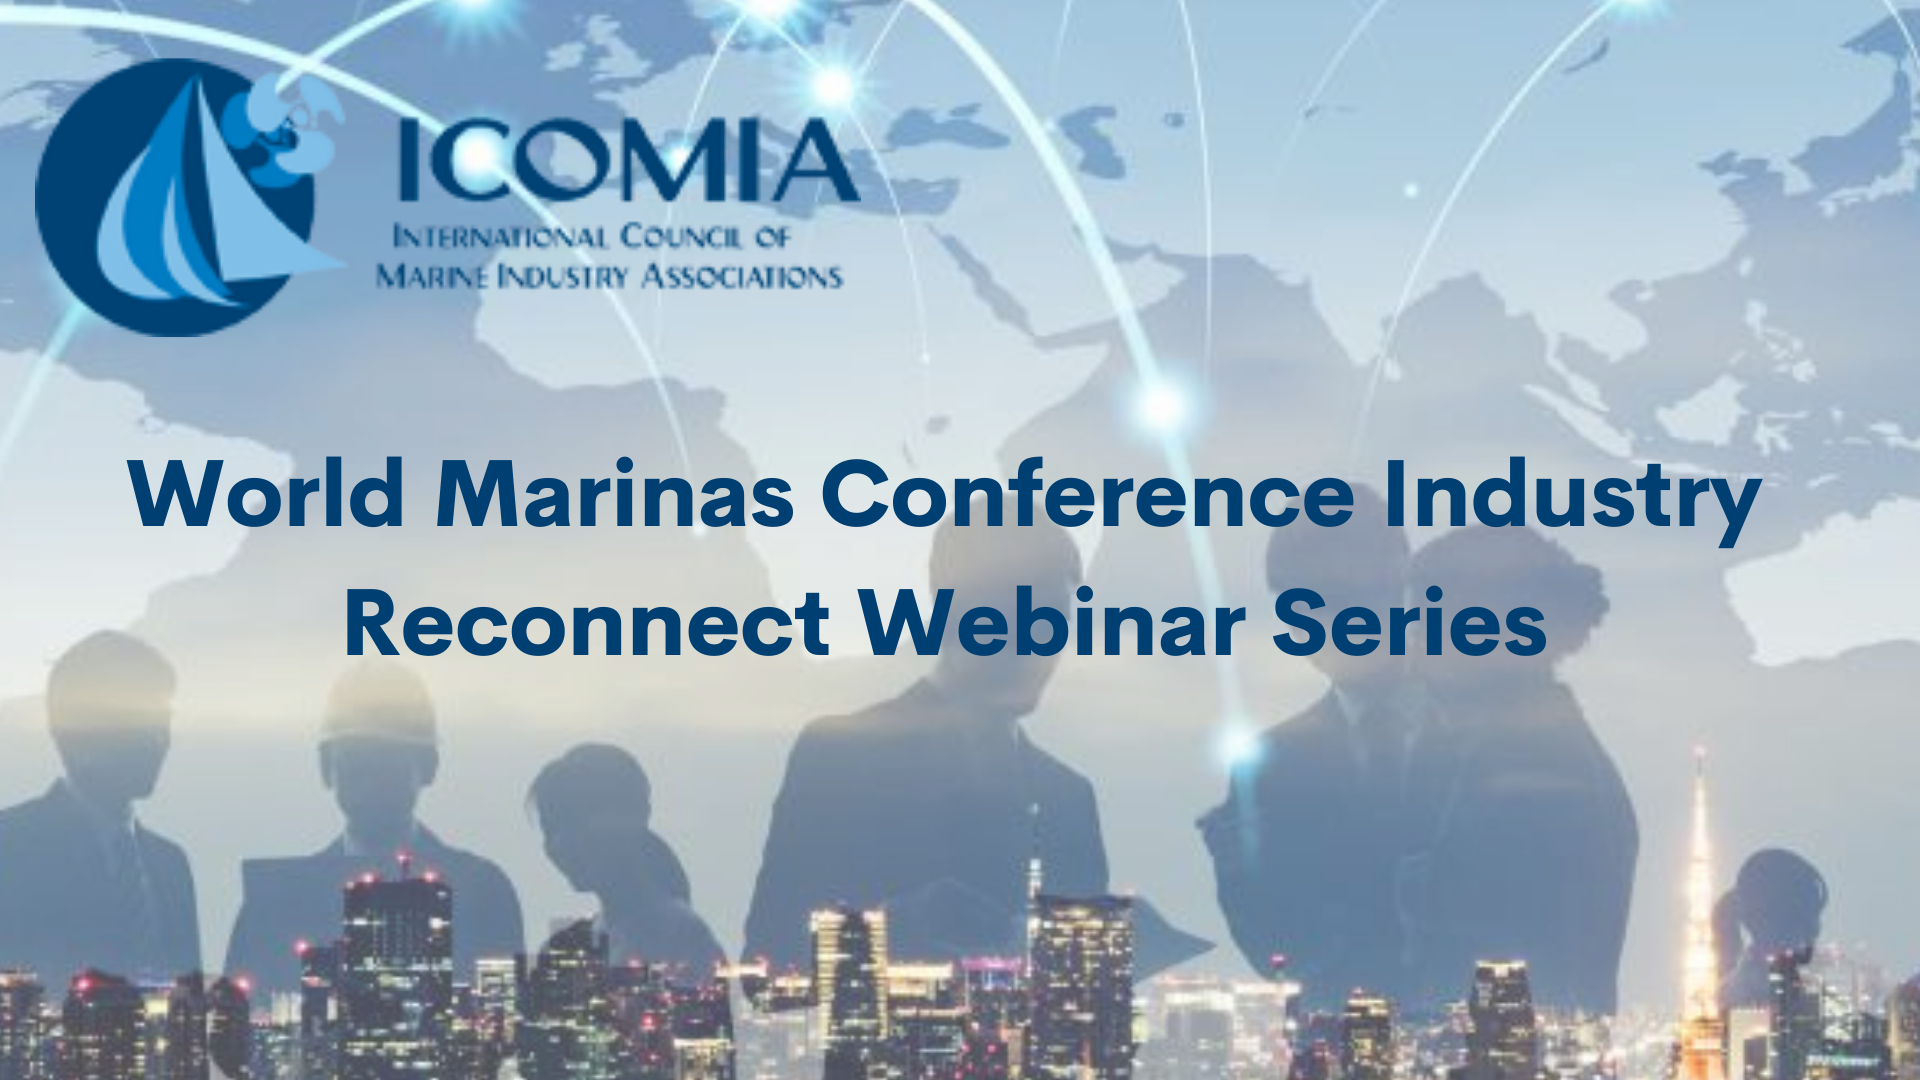 ICOMIA World Marina Conference Reconnect